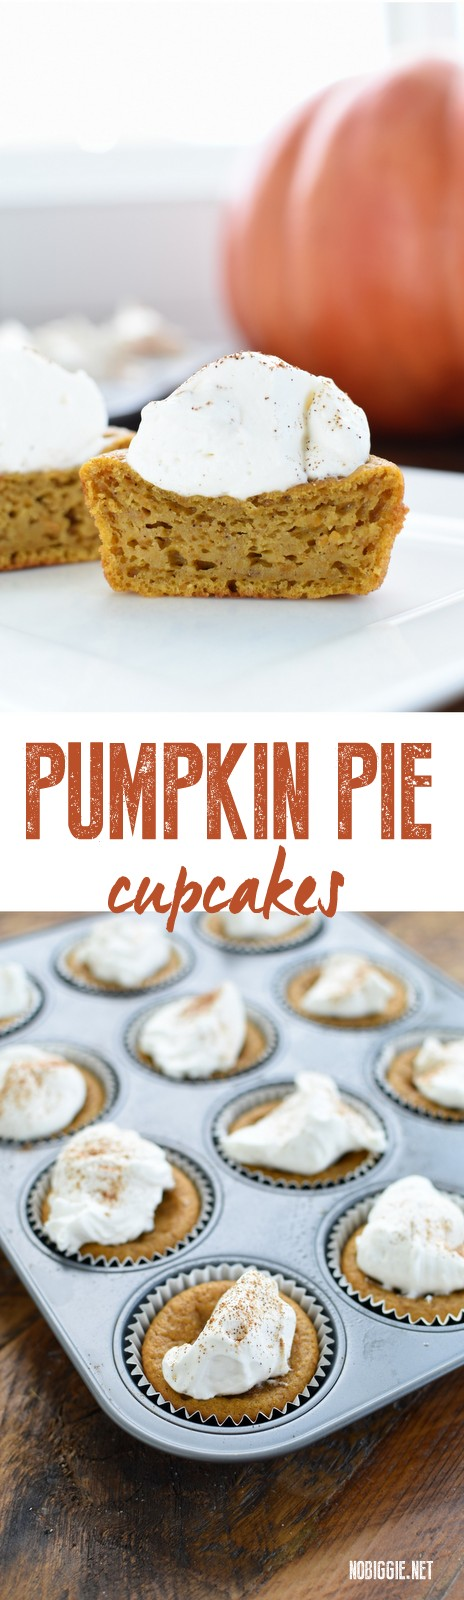 Pumpkin Pie Cupcakes...yep! Cupcakes. They're like the perfect blend between our two favorites: pumpkin pie and cupcakes! #pumpkin #pumpkinpiecupcakes #pumpkinpie #cupcakes #cupcakerecipes